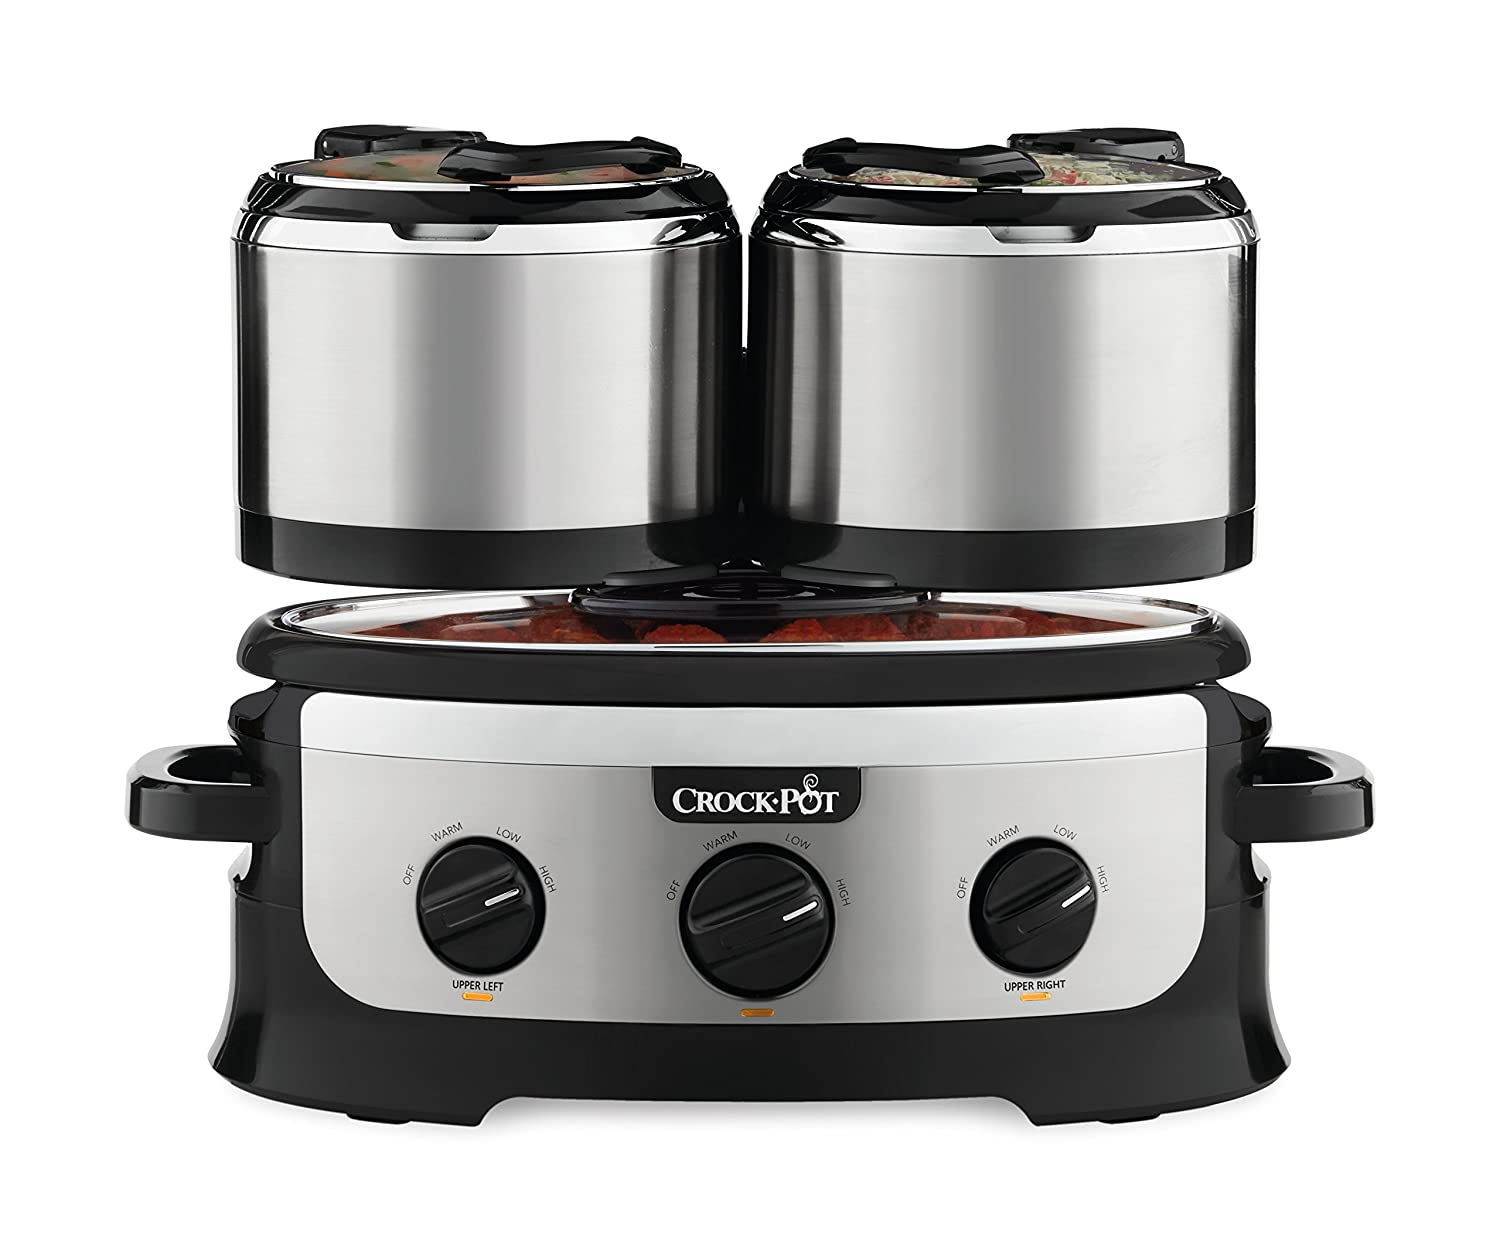 Crock-pot SCCPTOWER-S Swing and Serve Slow Cooker, Stainless, Steel